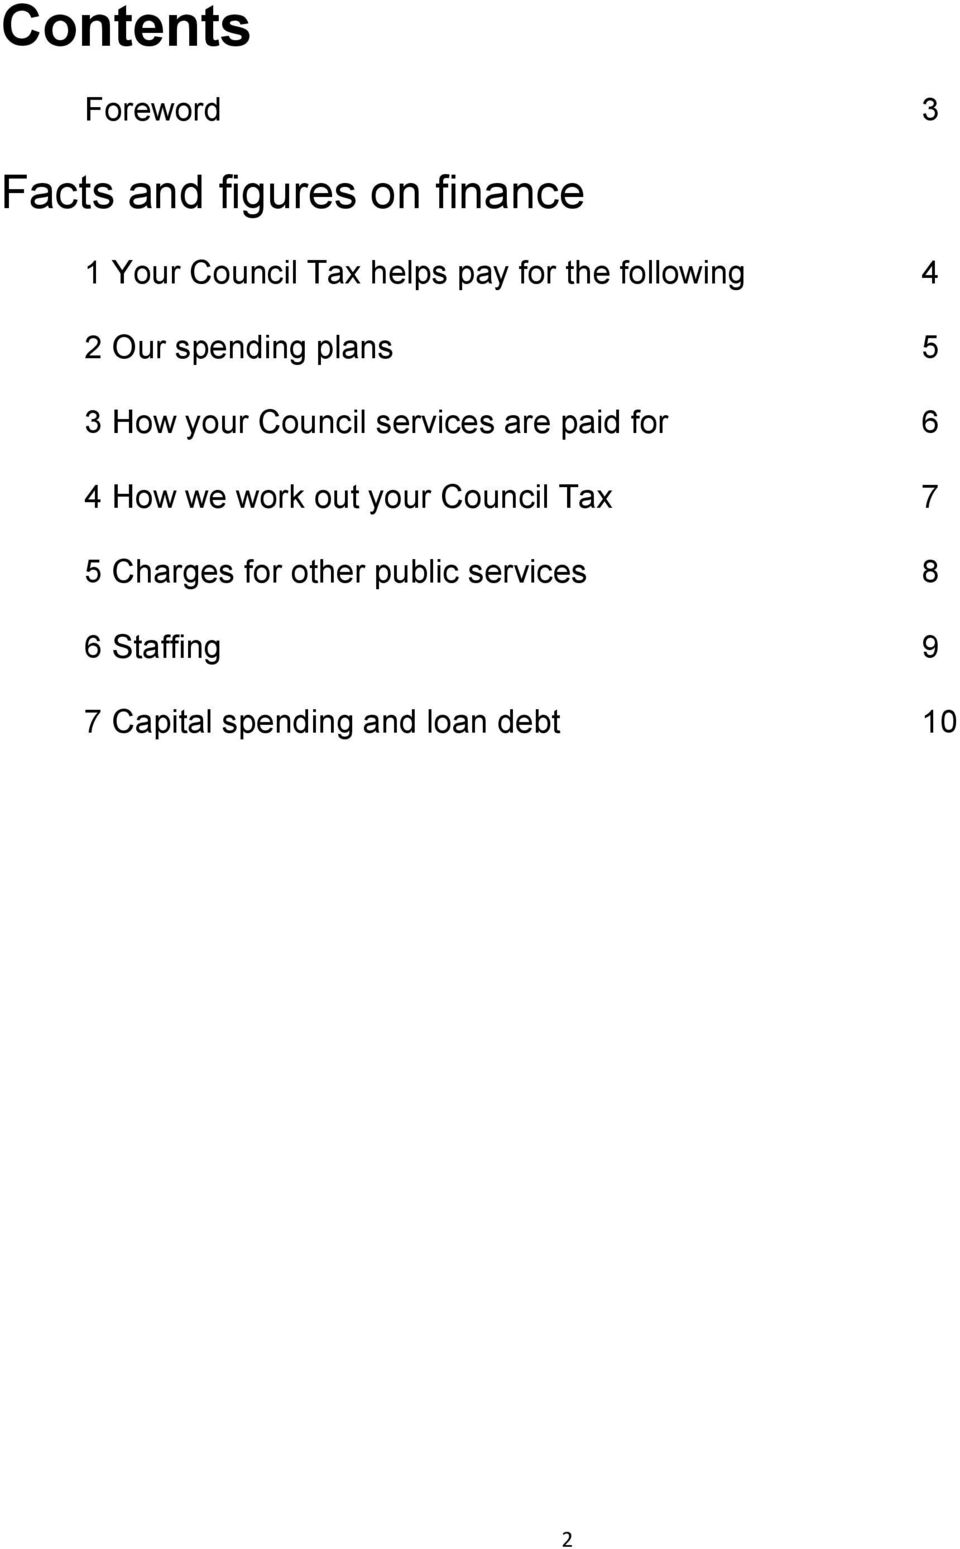 services are paid for 6 4 How we work out your Council Tax 7 5 Charges